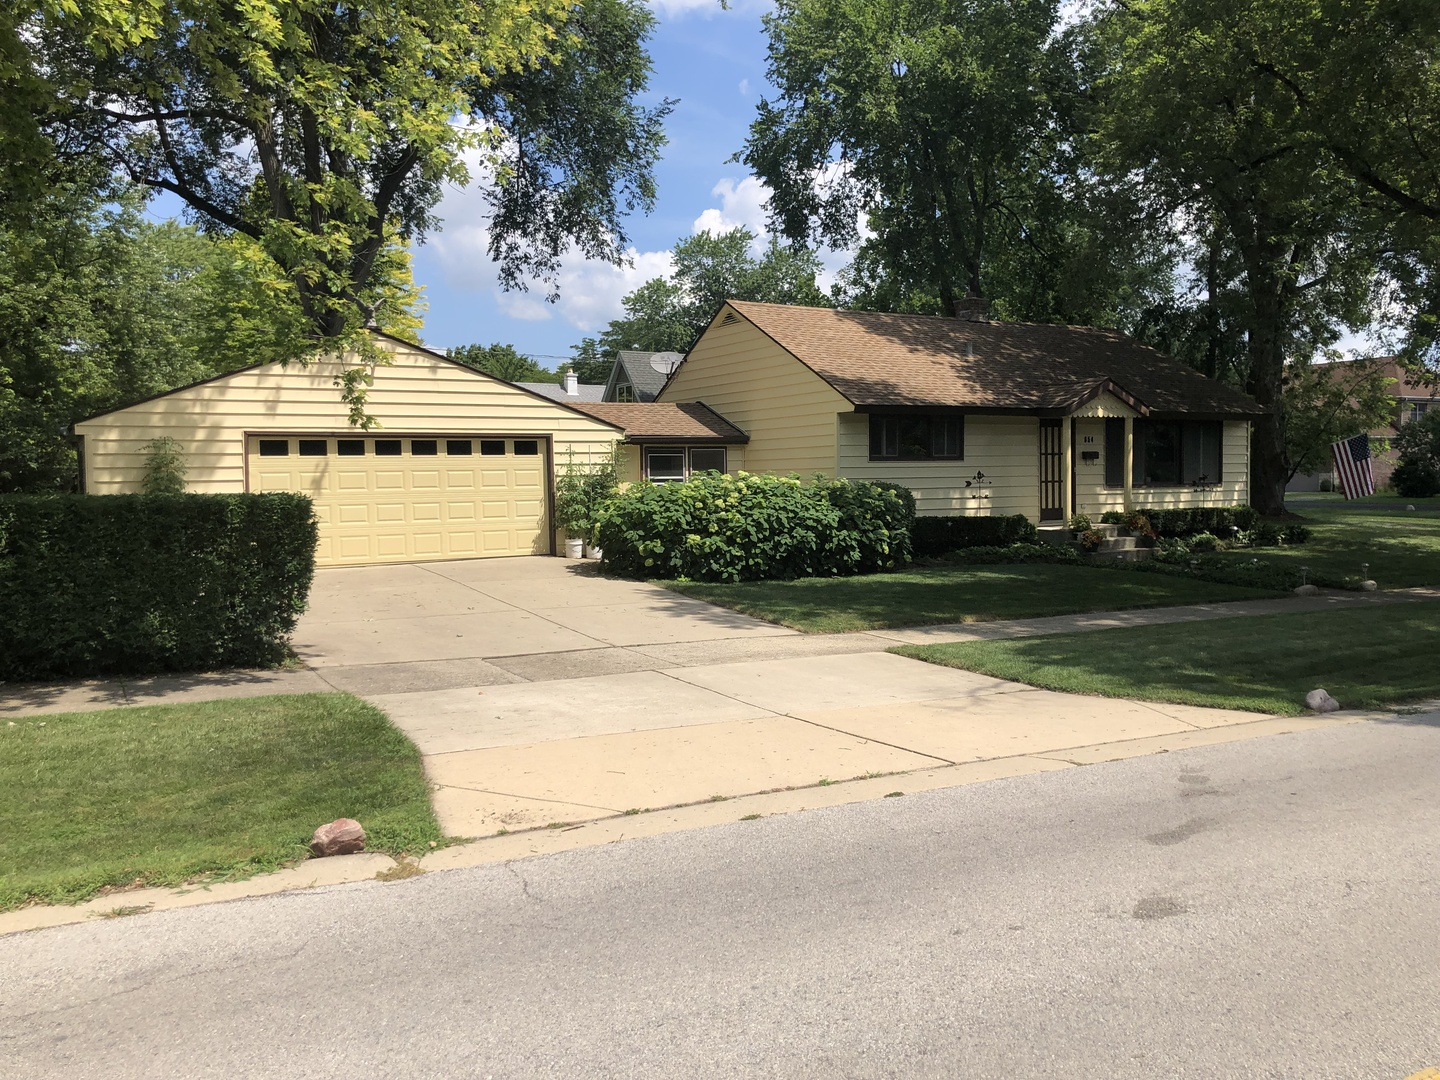 Great house in great area!  Home has nice hardwood floors and 3 bedrooms,  finished basement rec room!  Eat-in kitchen w/app. New  patio and the home is walking distance to Fremd H.S., Newer Furnace and New AC.  3 Bedrooms with full basement.